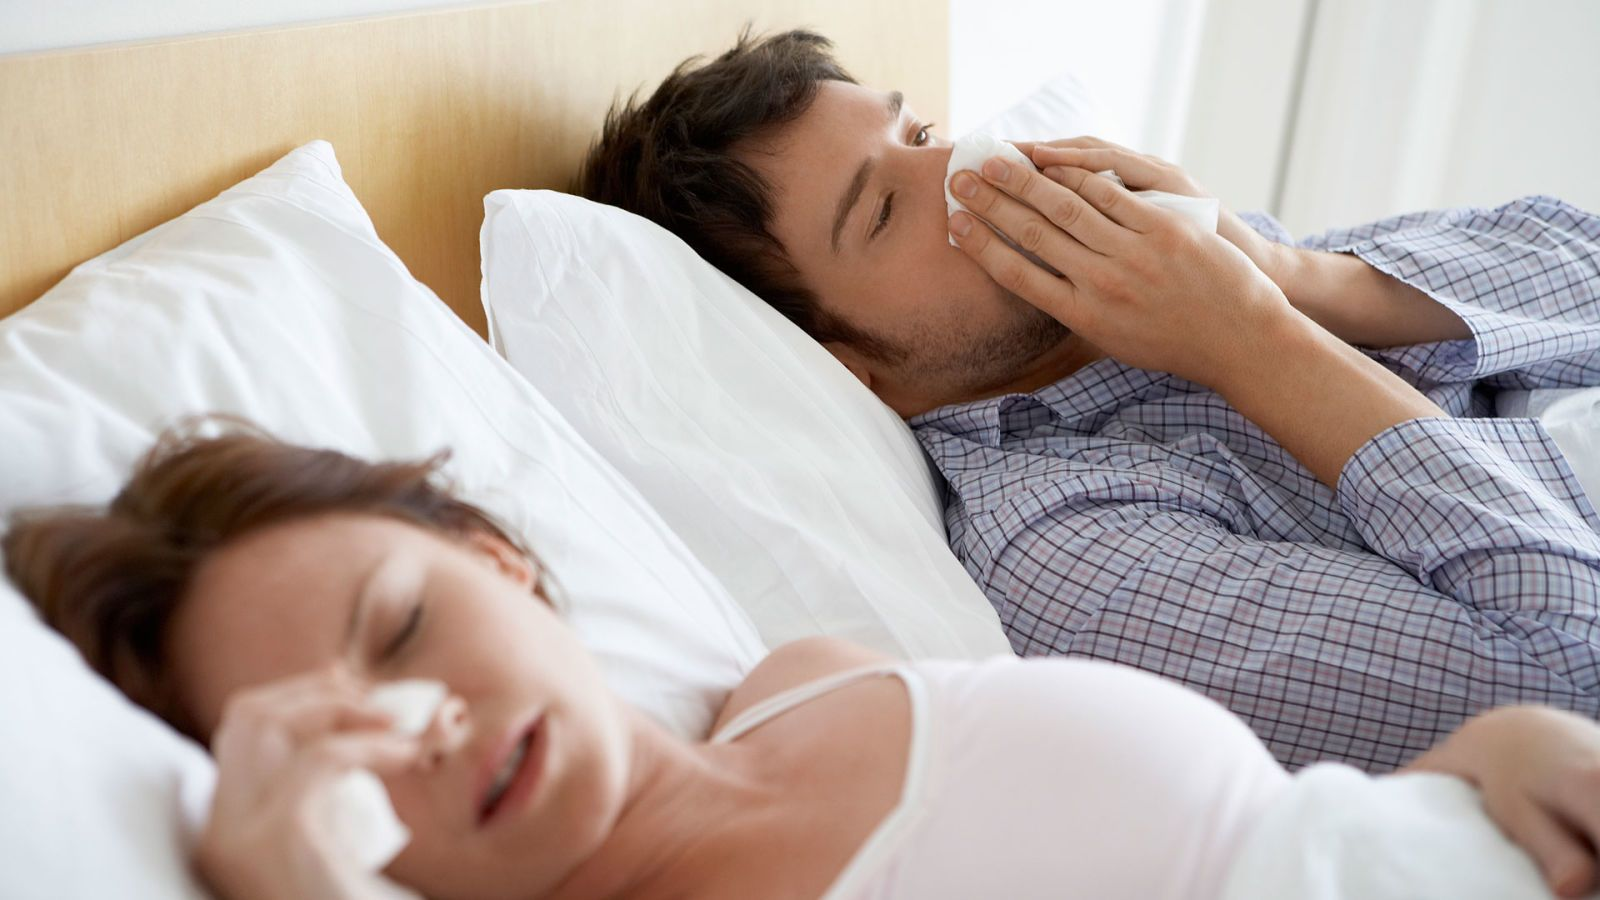 sex when you have a cold